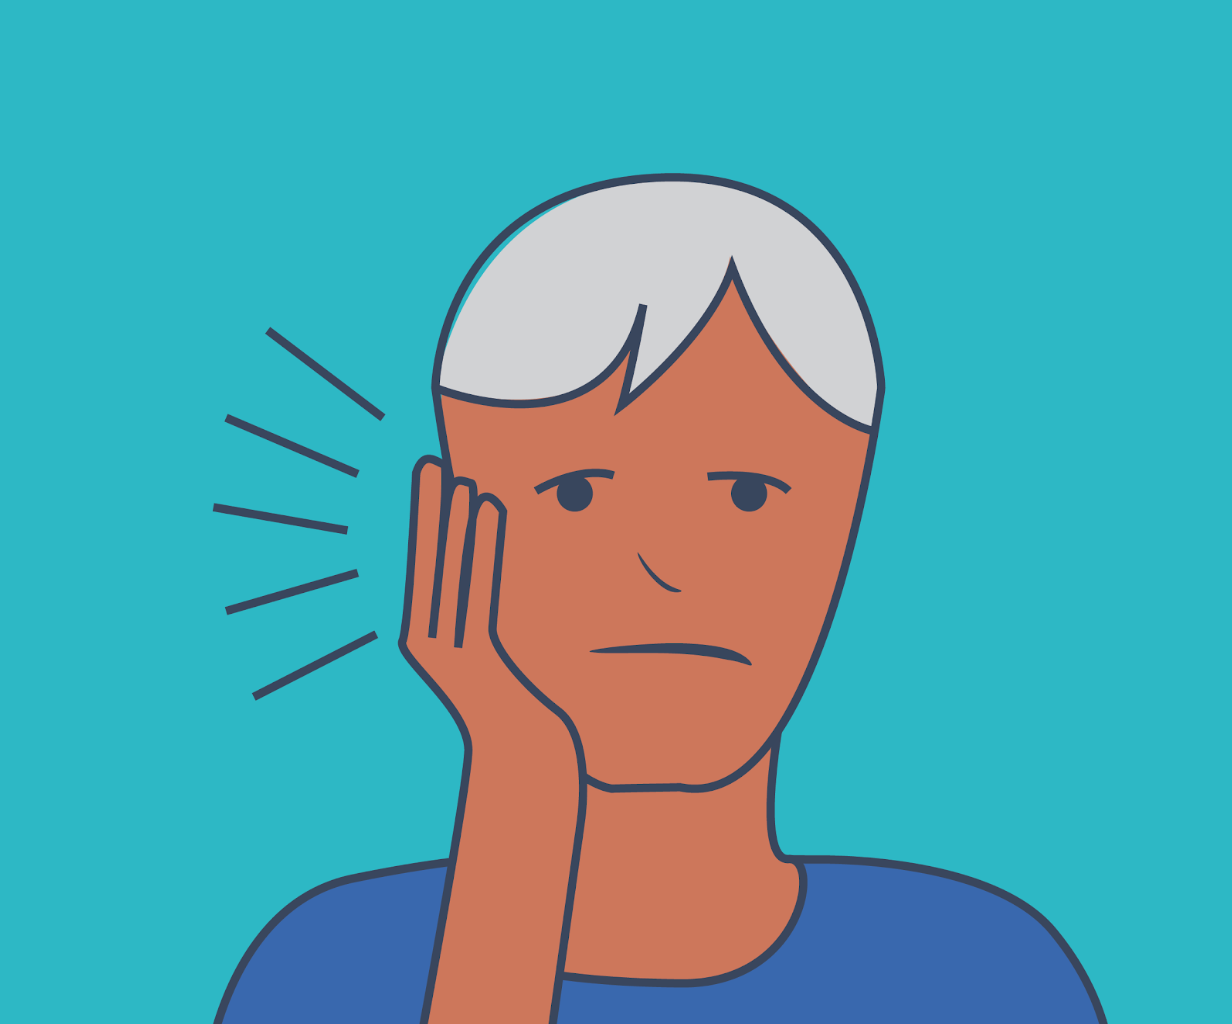 Graphic of person in pain holding their jaw